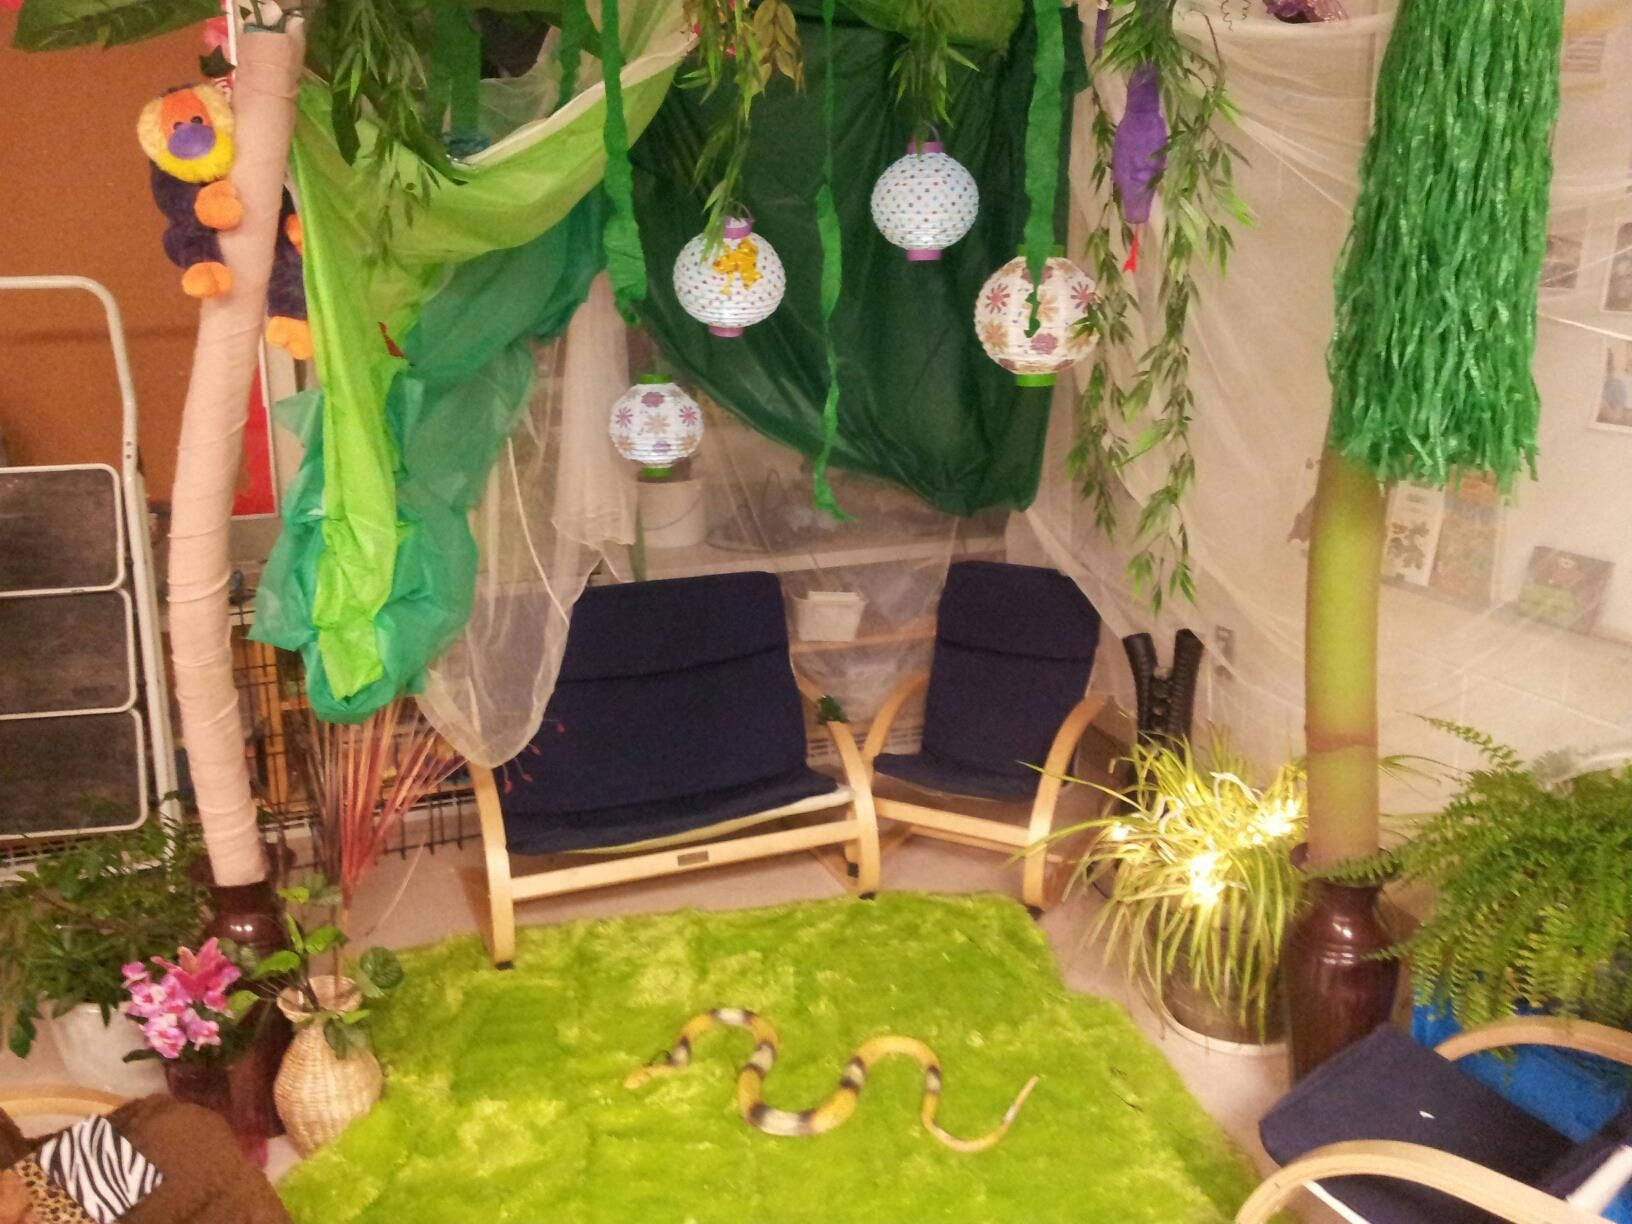 Tropical Rainforest For More Inspiring Play Ideas Pinterest Kinderooacademy Imagine